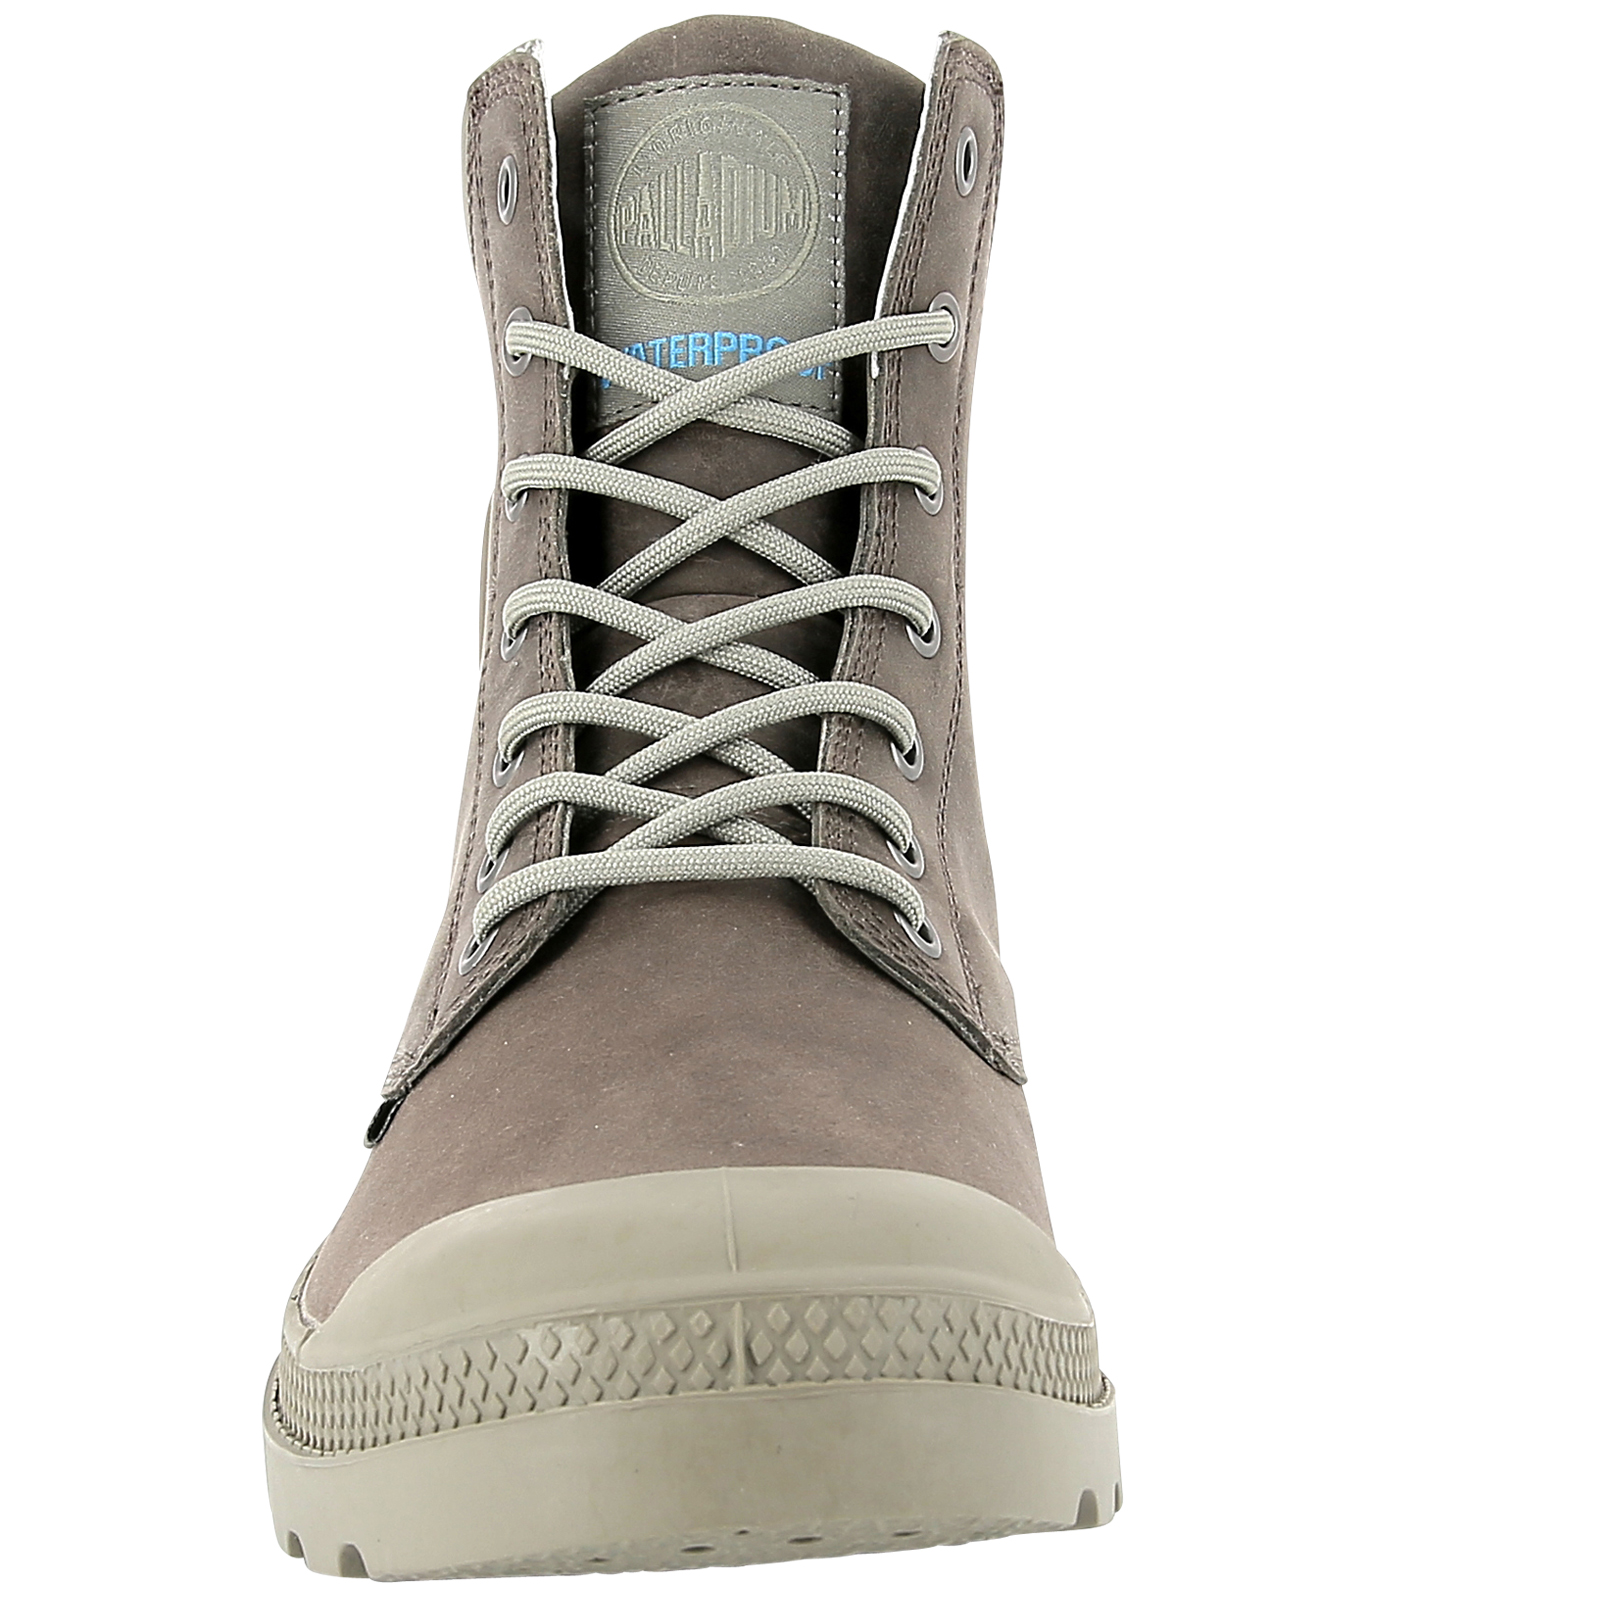 Palladium-Mens-Pampa-Cuff-Lux-Designer-Waterproof-Leather-Walking-Boots-Shoes thumbnail 20